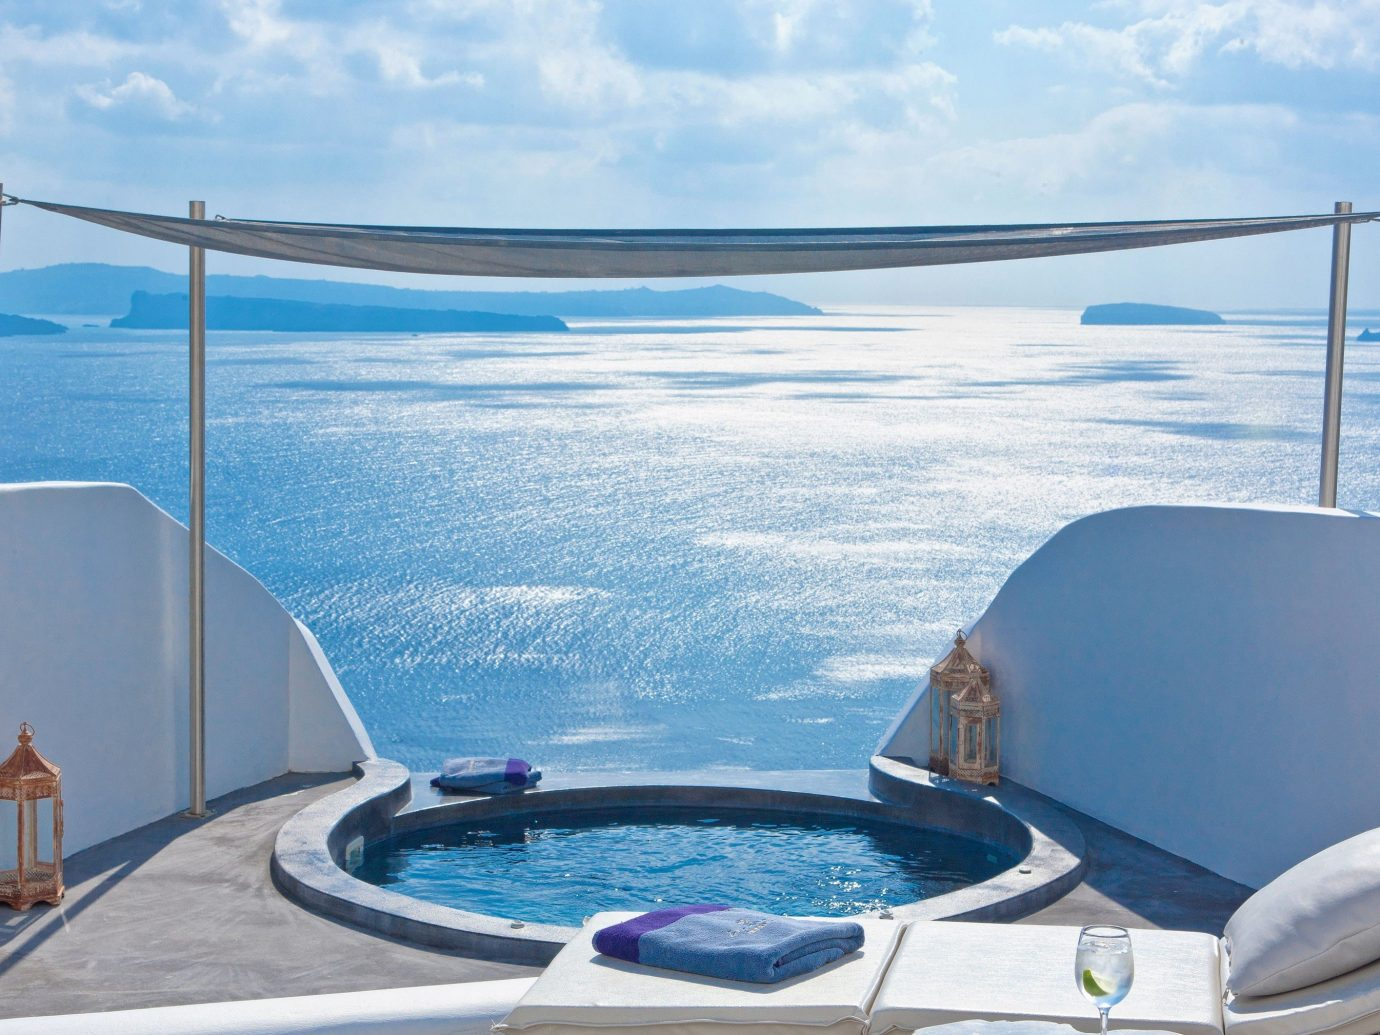 Hotels Offbeat sky water outdoor swimming pool vehicle Boat yacht vacation Ocean overlooking passenger ship Sea bed jacuzzi Deck day clouds